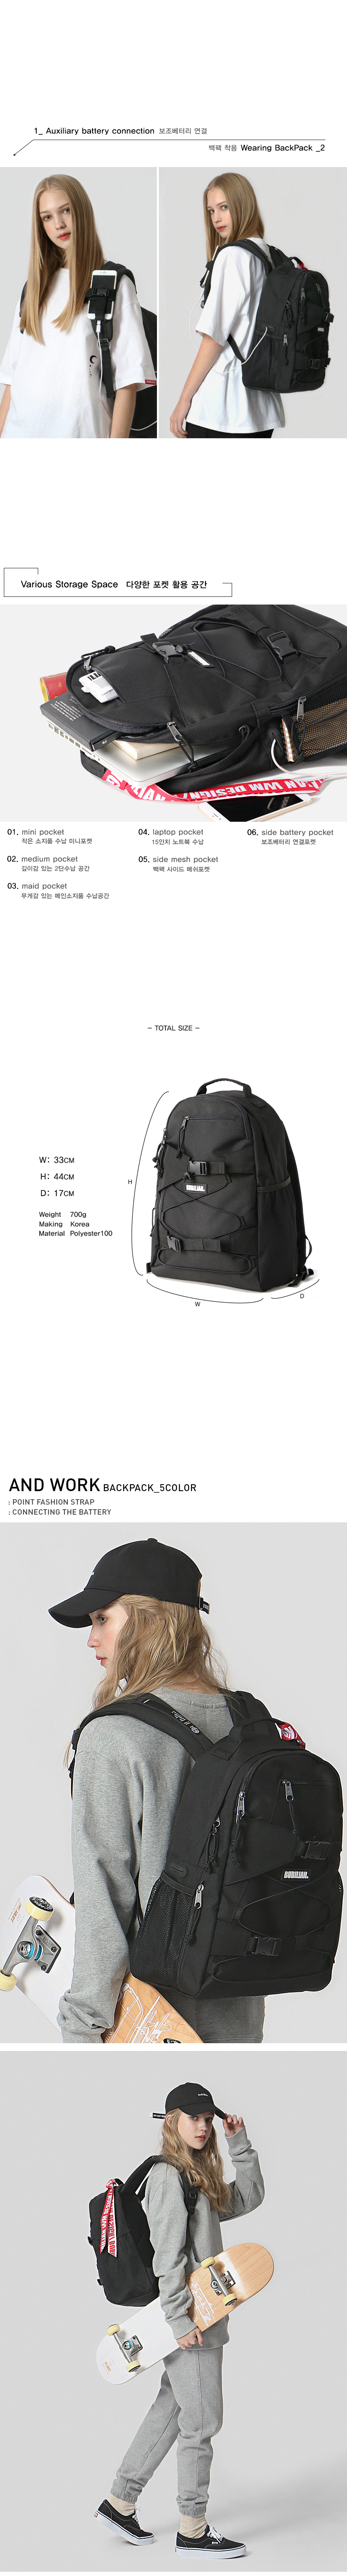 [스트랩 포함]Bubilian And Work Backpack _ [BLACK]